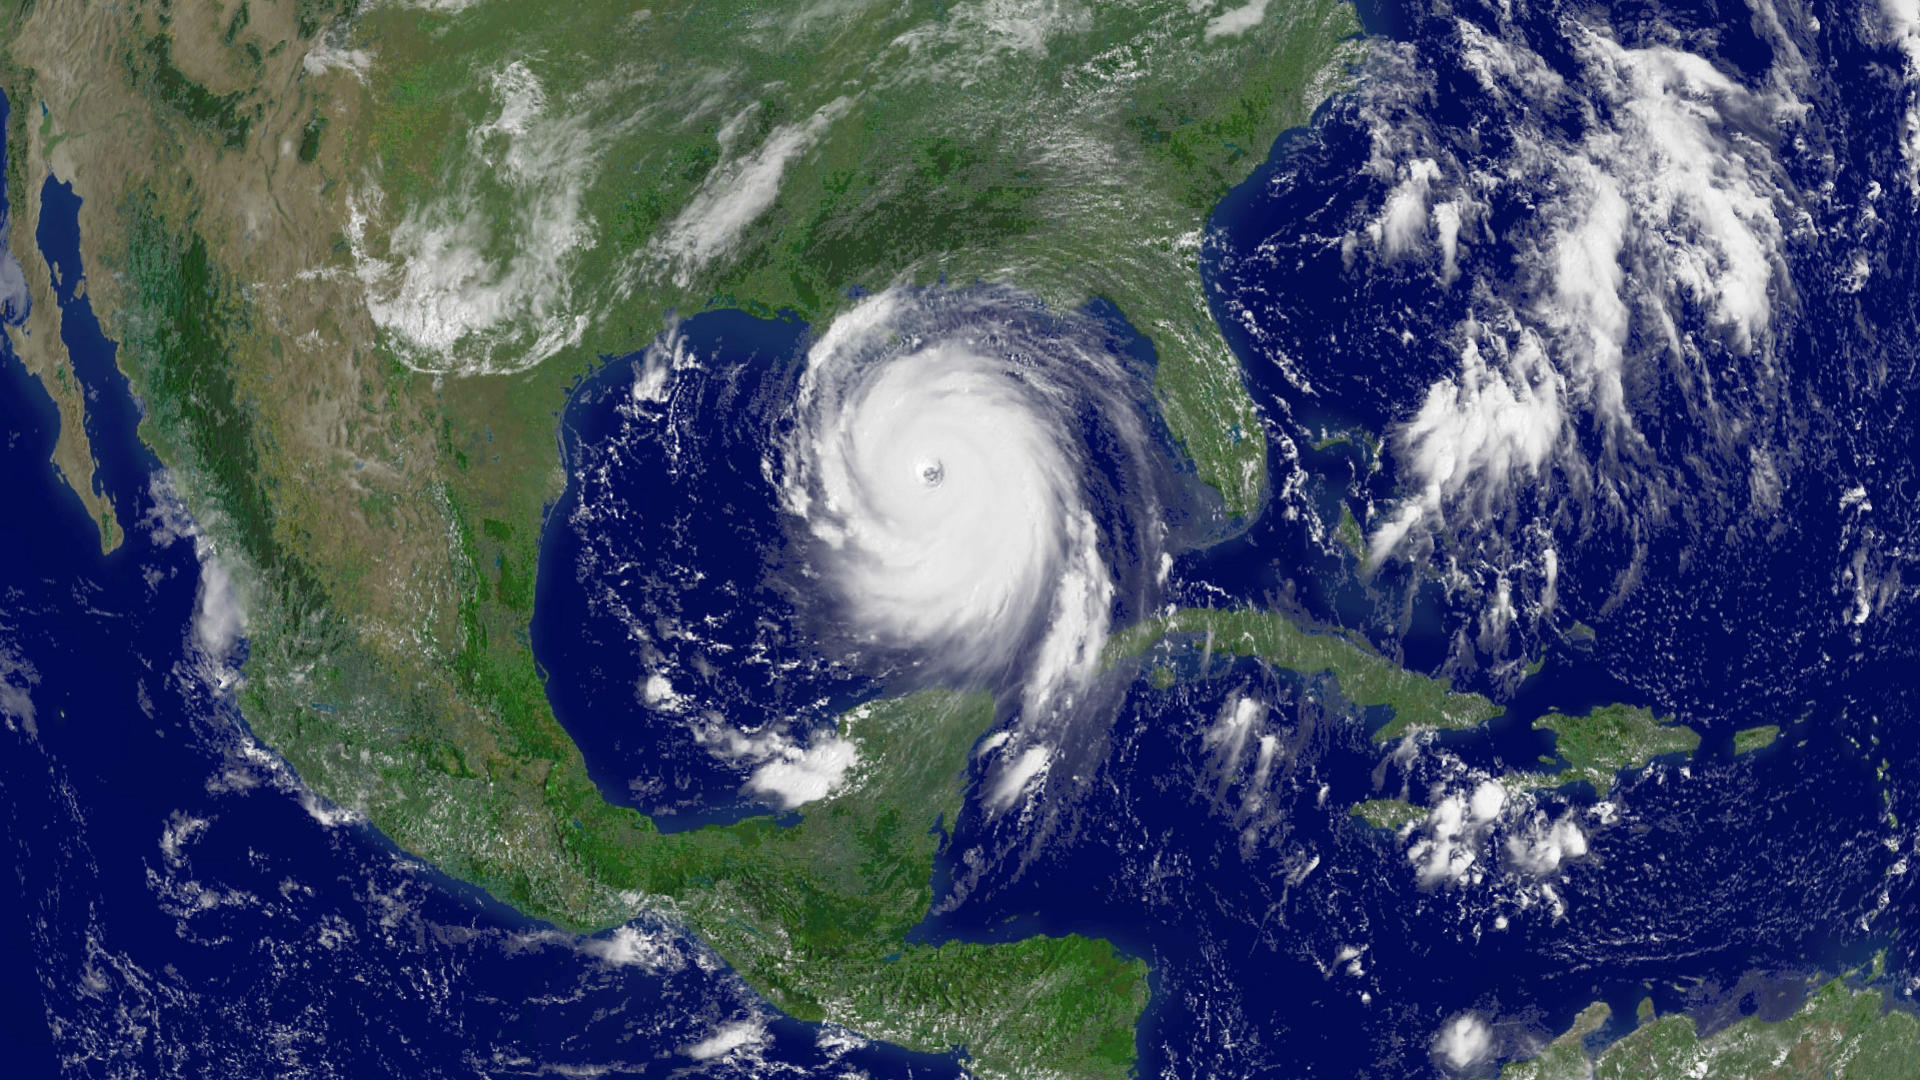 Satellite image of Hurrican Katrina making landfall in 2005